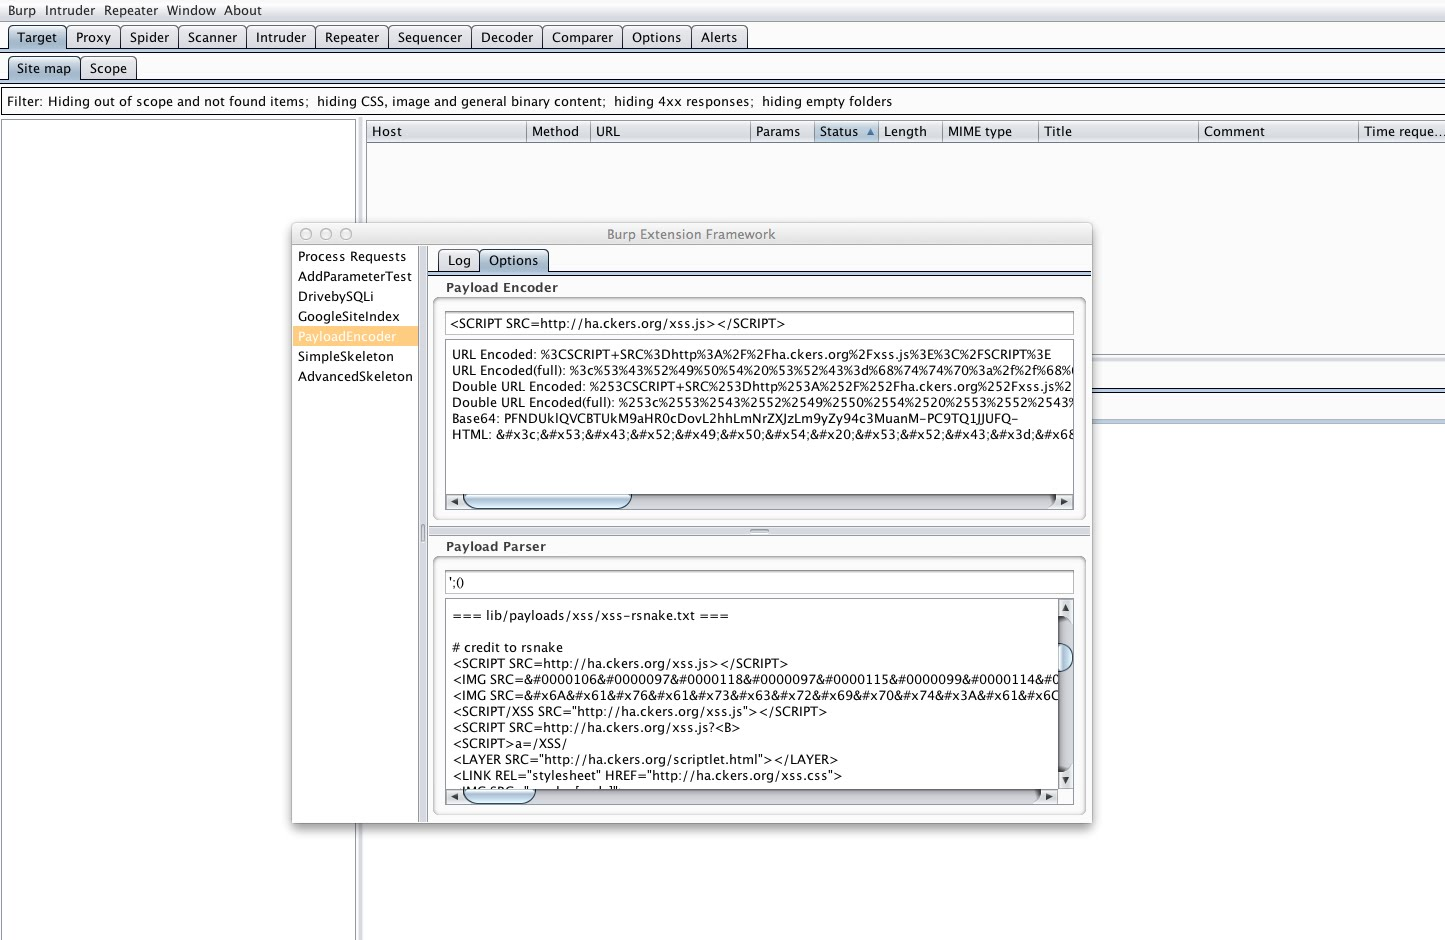 Occupy Burp Suite: Adding GUI features to an extension